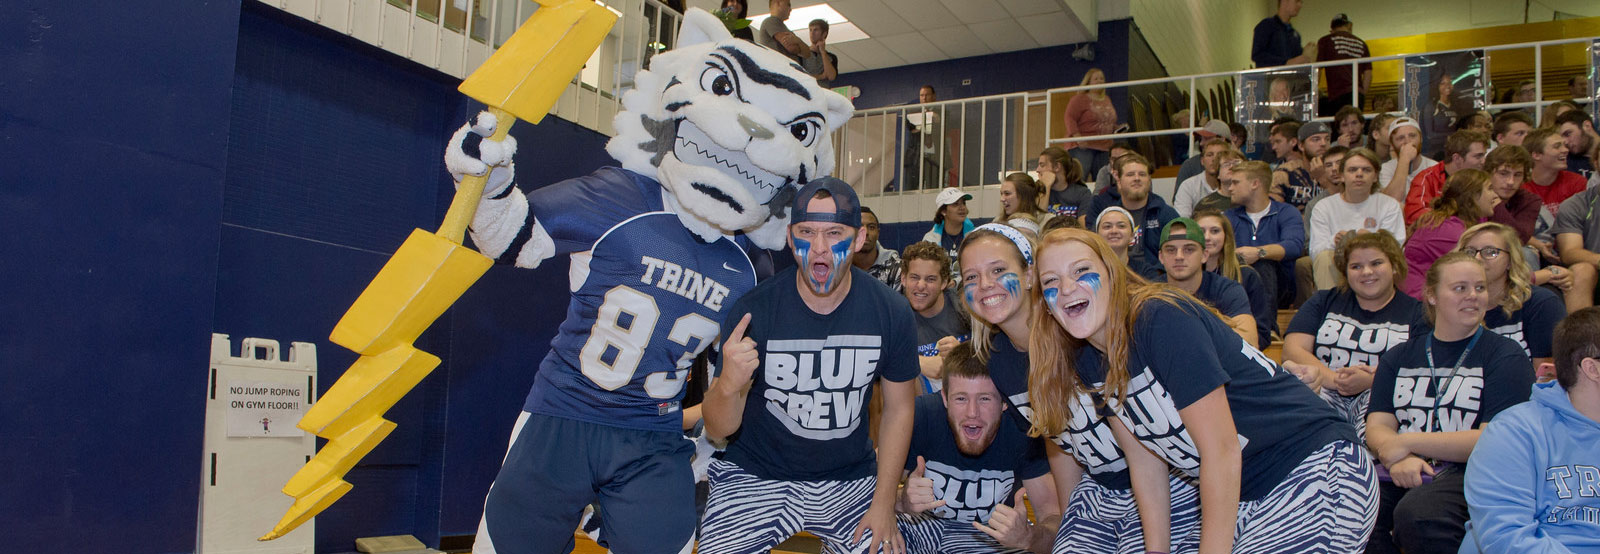 Blue Crew students